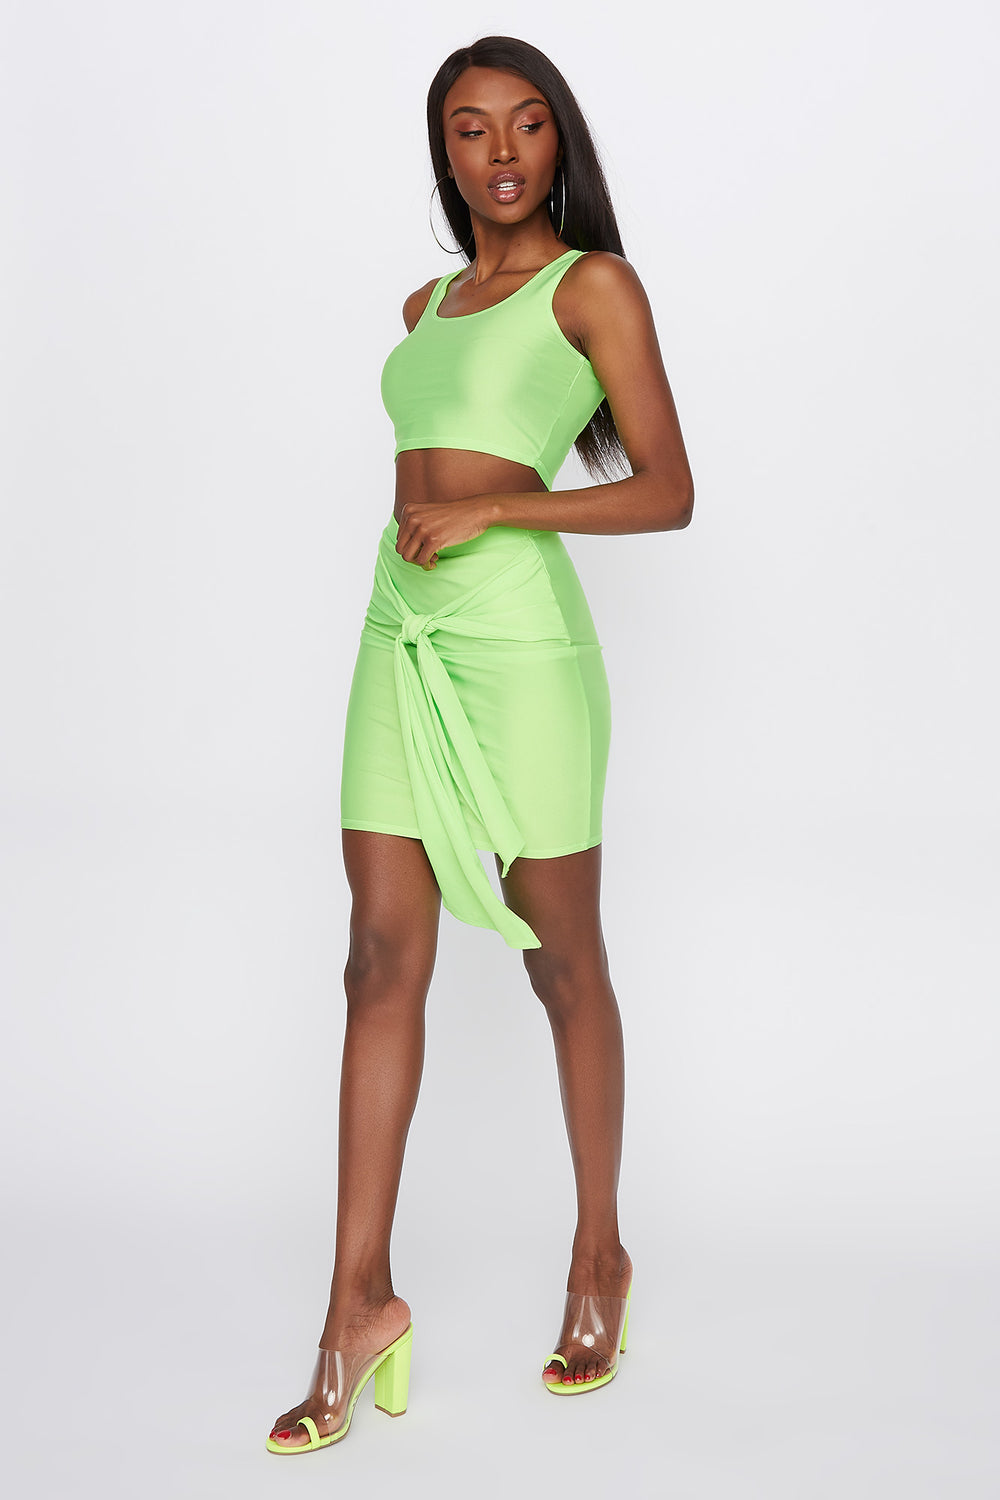 Crystal Basic Cropped Tank Top Neon Green